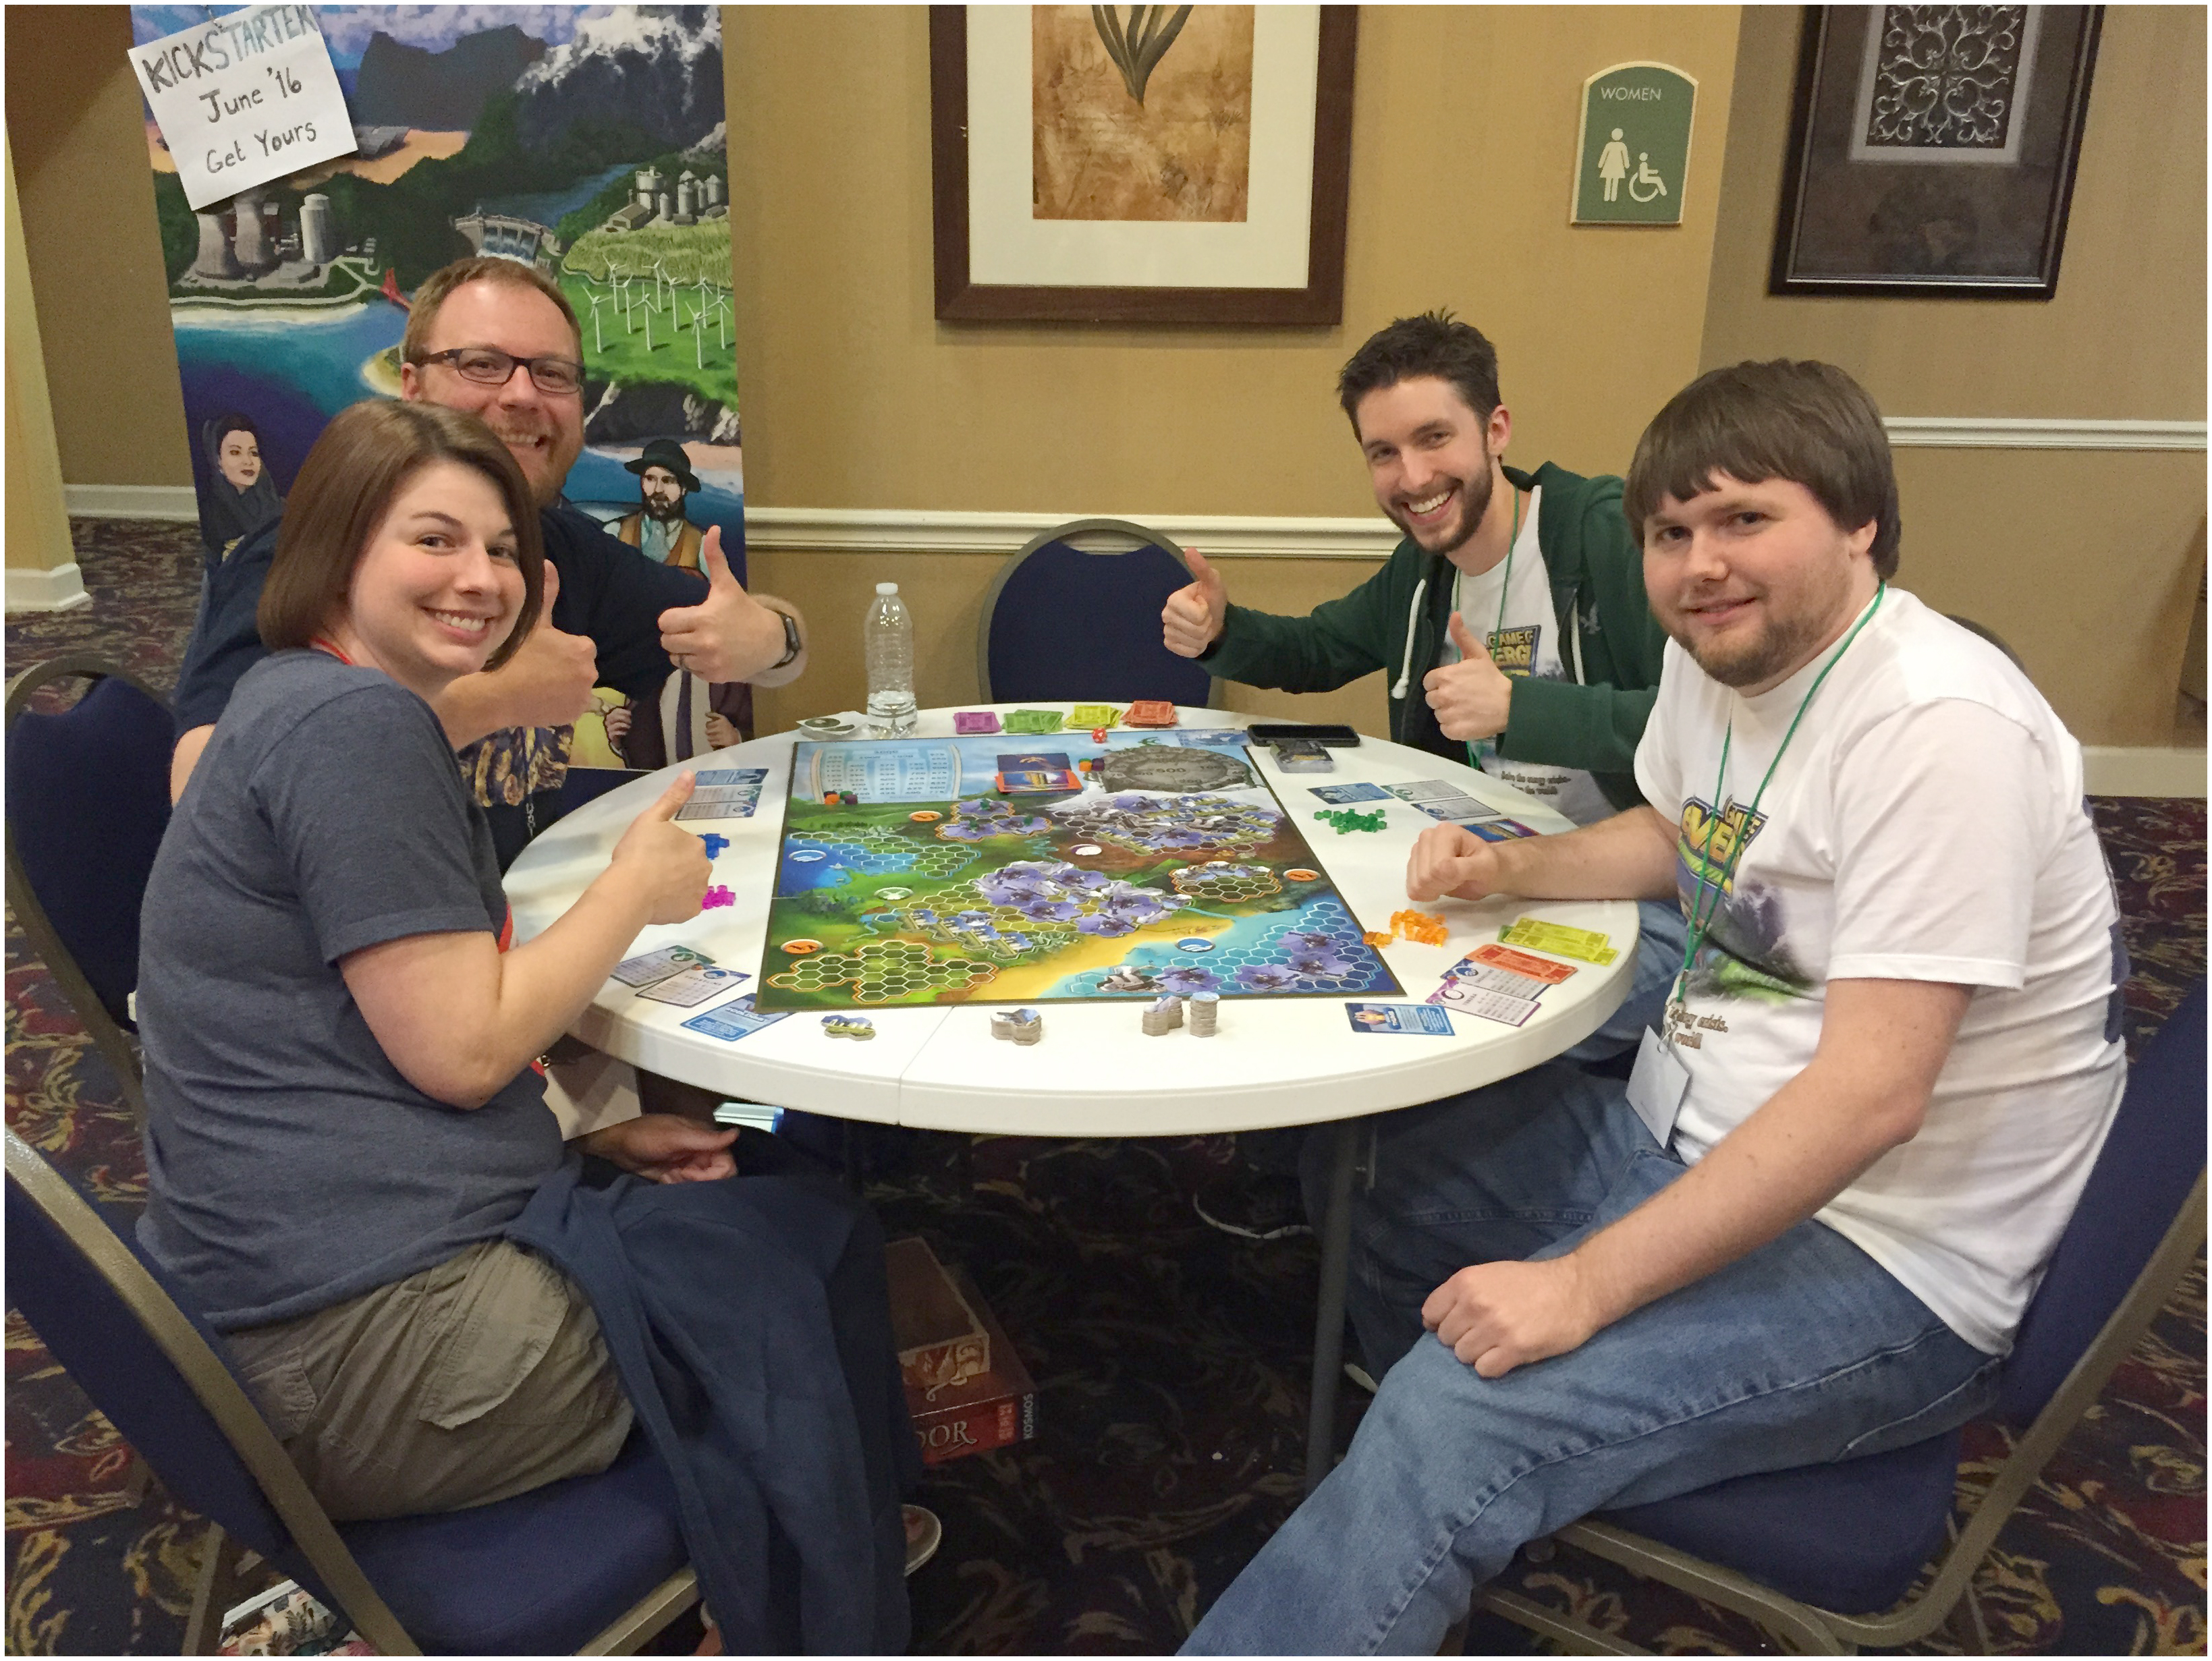 Wright (second from right) and group playing Game of Energy at gaming conference.